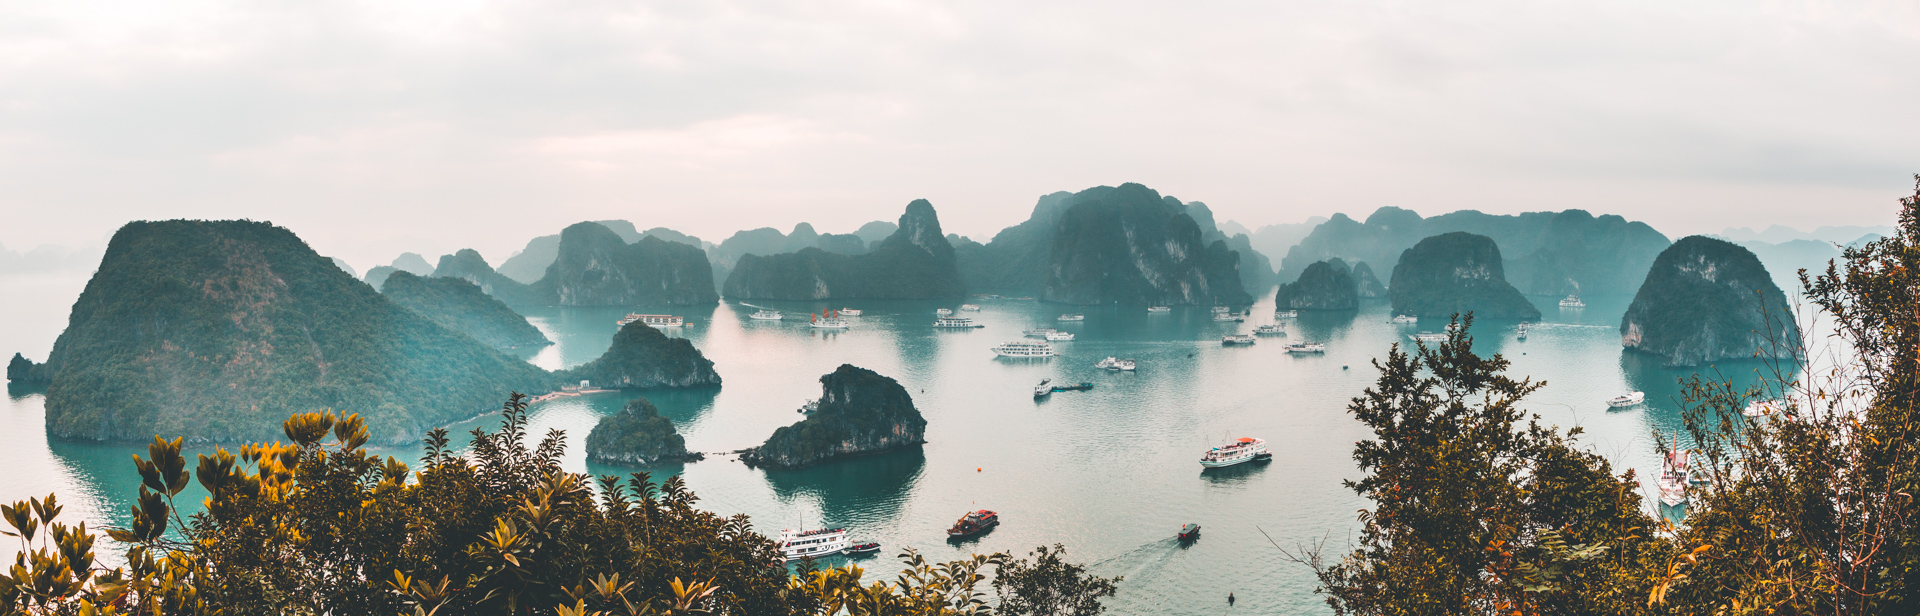 Ha Long Bay Panoramic View